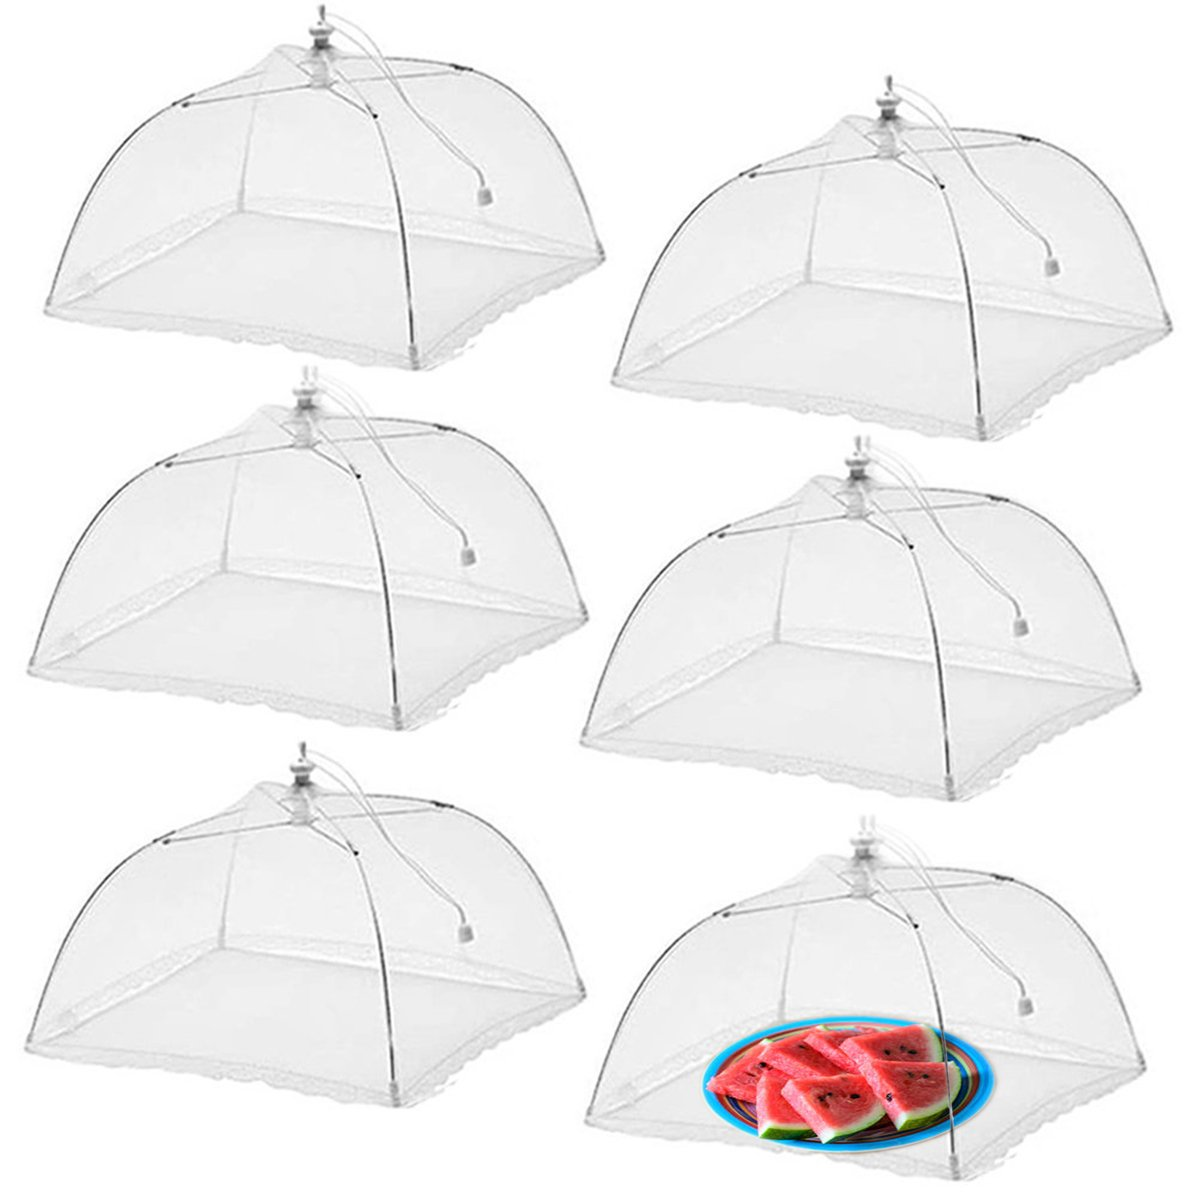 Simply Genius (6 pack) Large and Tall 17x17 Pop-Up Mesh Food Covers Tent Umbrella for Outdoors, Screen Tents Protectors For Bugs, Parties Picnics, BBQs, Reusable and Collapsible